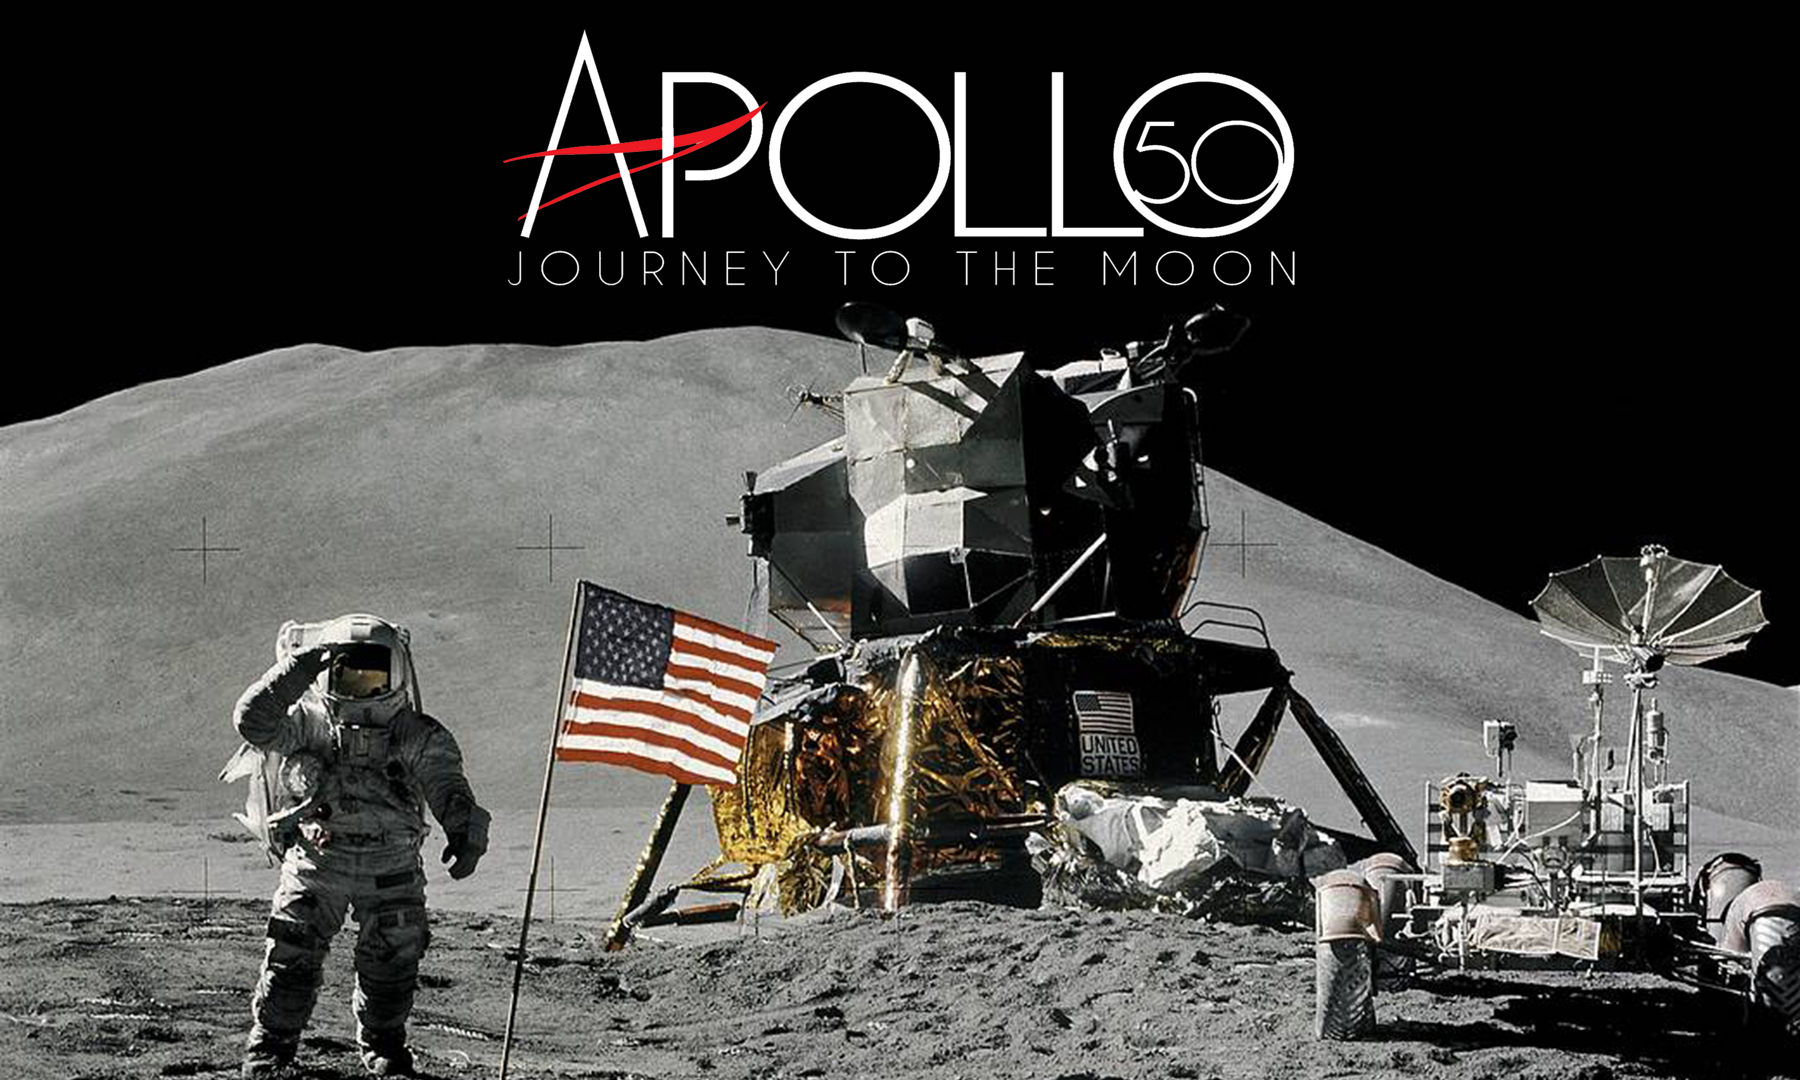 Apollo 50 Journey to the Moon